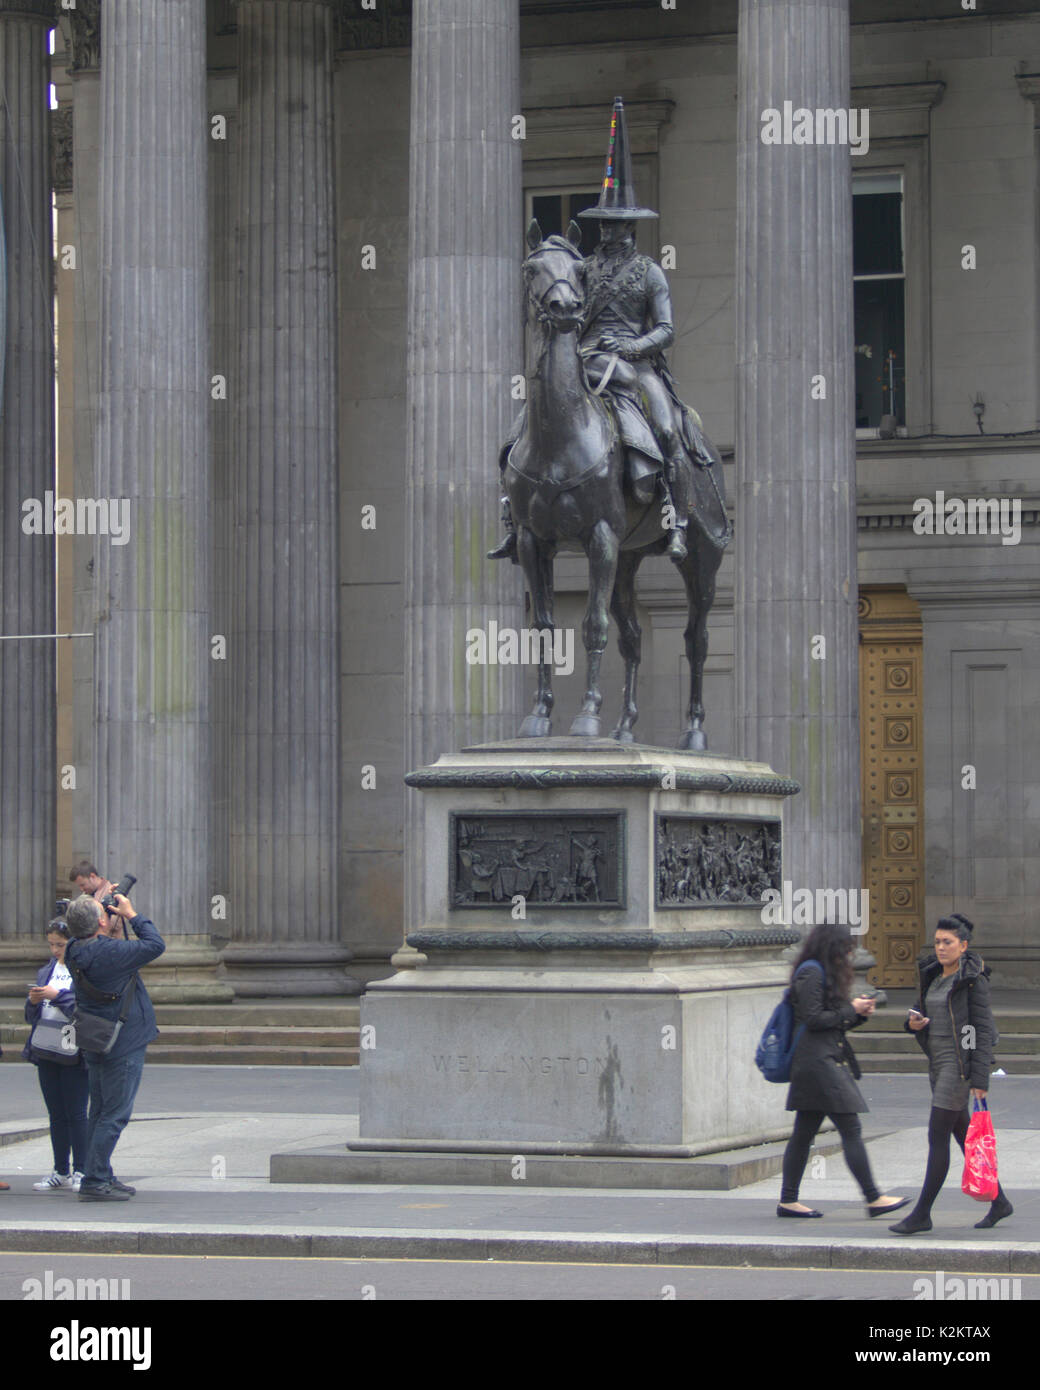 """Glasgow, Scotland, UK. 01st Sep, 2017. After the recent pride march and homophobic protests in the city the iconic and famous Duke of Wellington statue cone head outside the museum of Modern Art has a new headgear. Rainbow letters adorn a Black cone with the Words """"Jesus is Lord'. It often has a new cone placed on it overnight by unknown individuals and this one replaced a previous one, a rainbow coloured come supporting the recent gay pride week in the city.It is being perceived as a reply to this from a religions person. Credit: gerard ferry/Alamy Live News - Stock Image"""